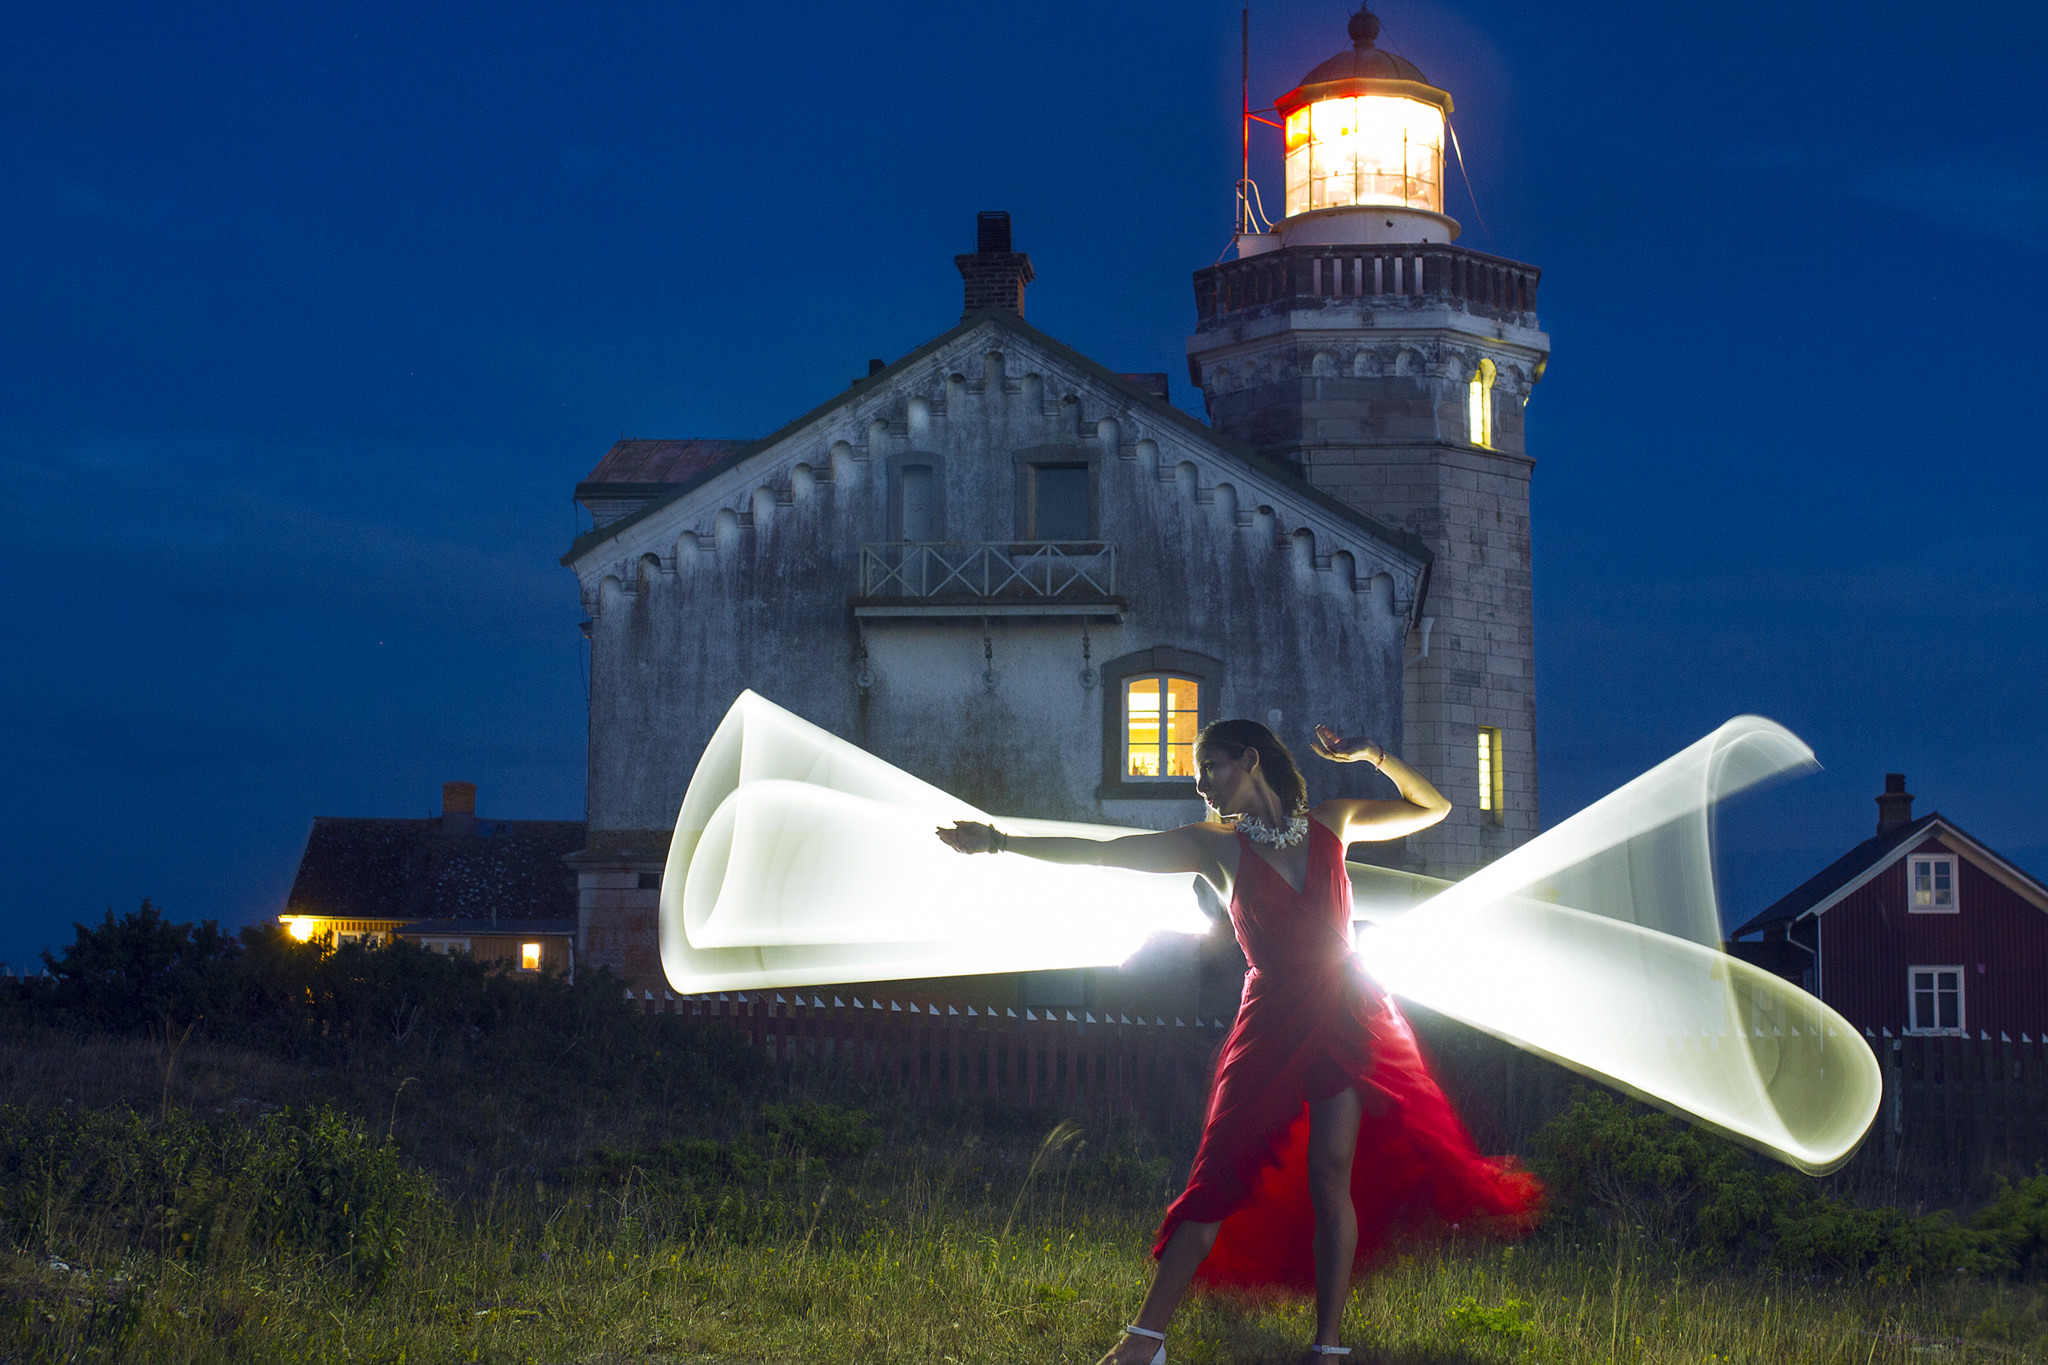 4th try at Light Painting in Stora Karlsö, Gotland